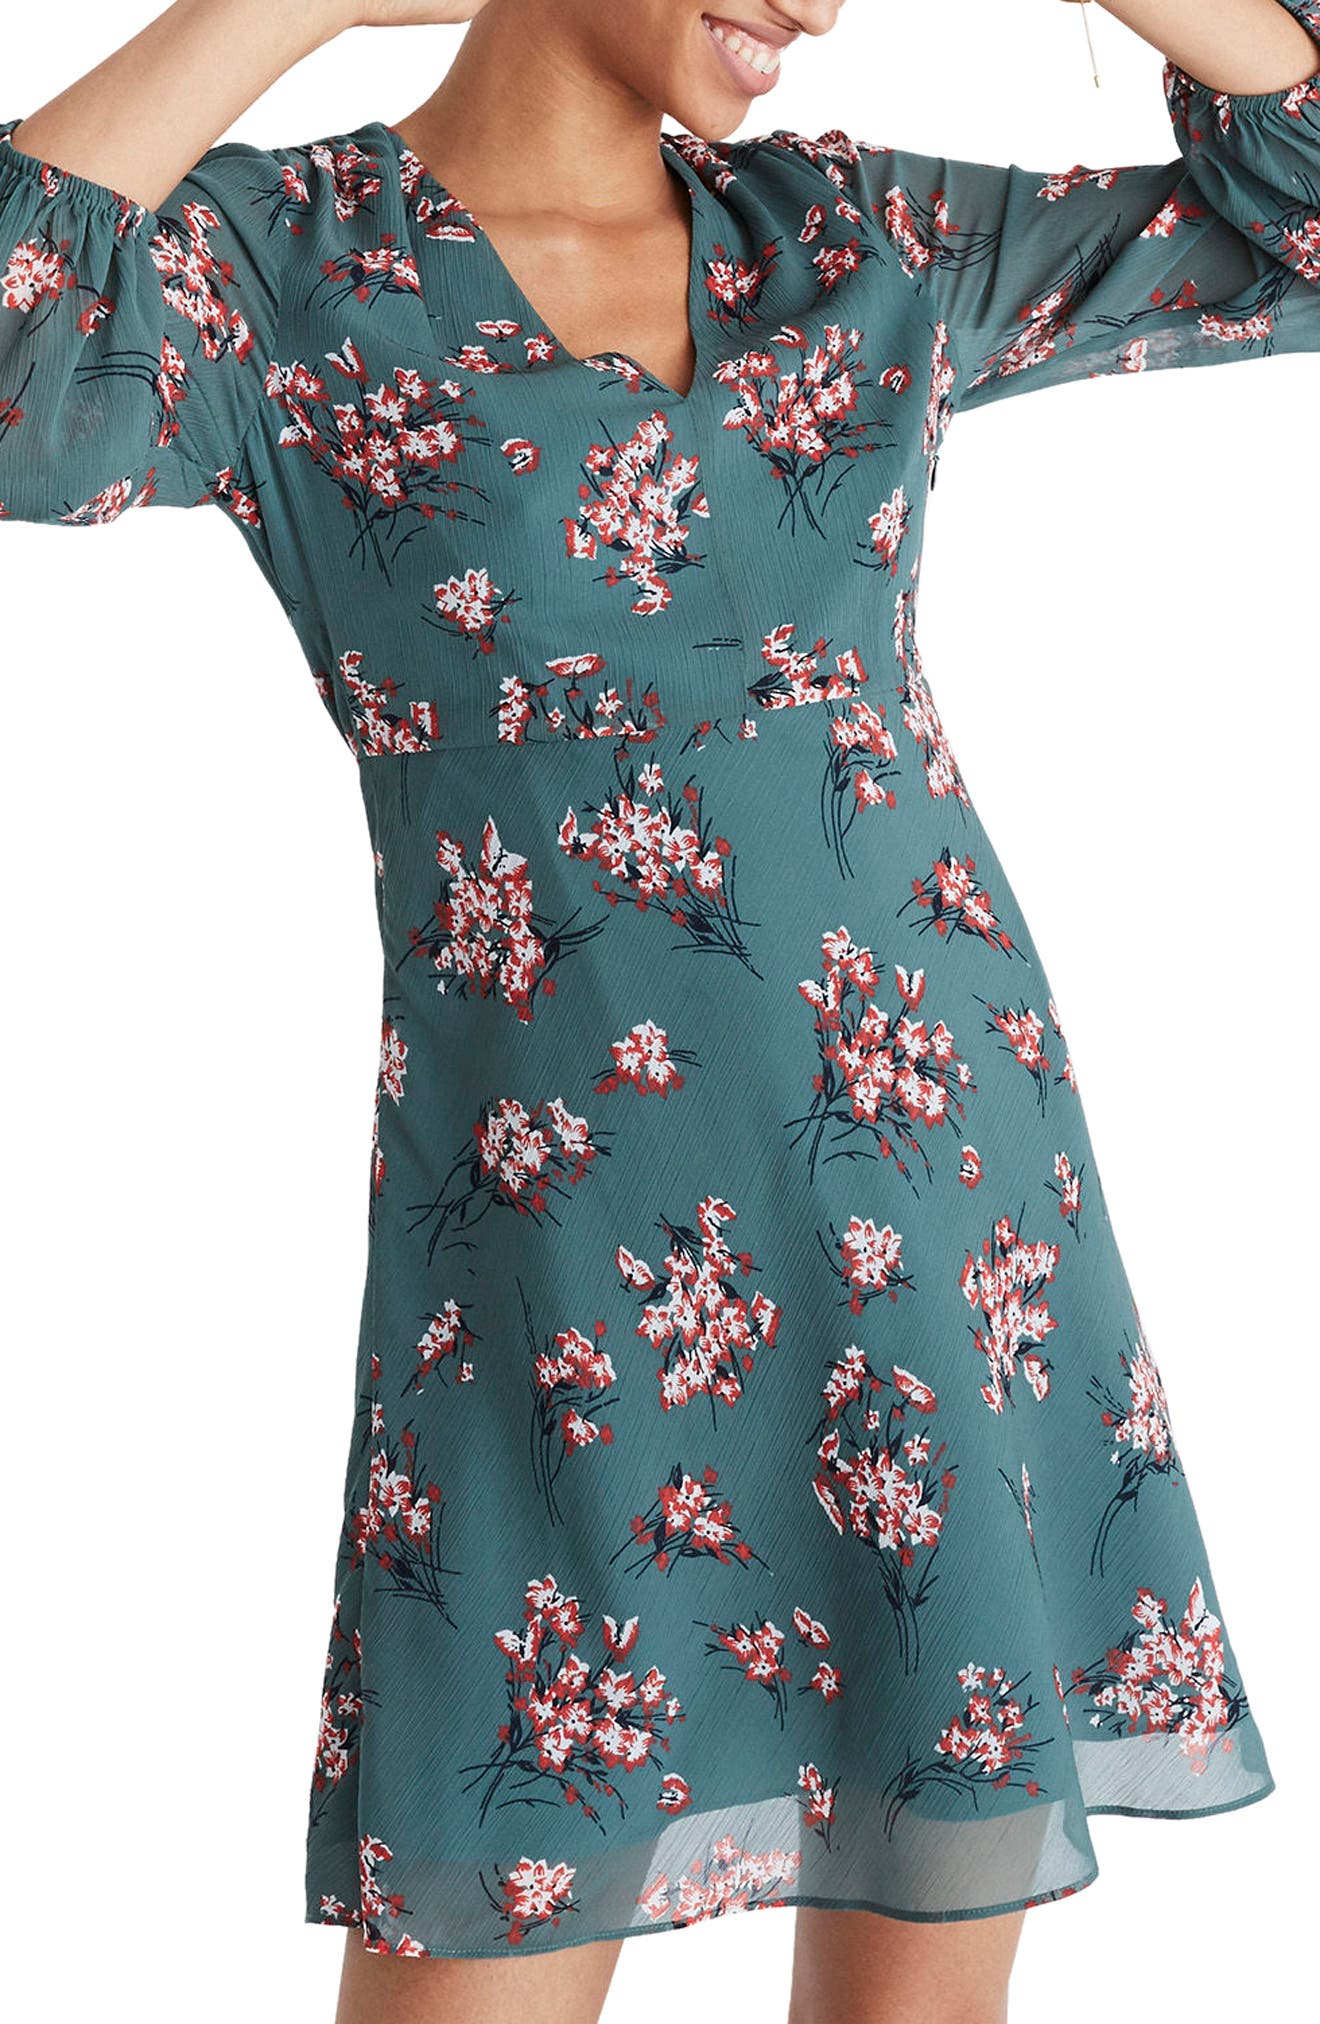 Marguerite Swing Dress,                             Main thumbnail 1, color,                             Butterfly Meadow Green